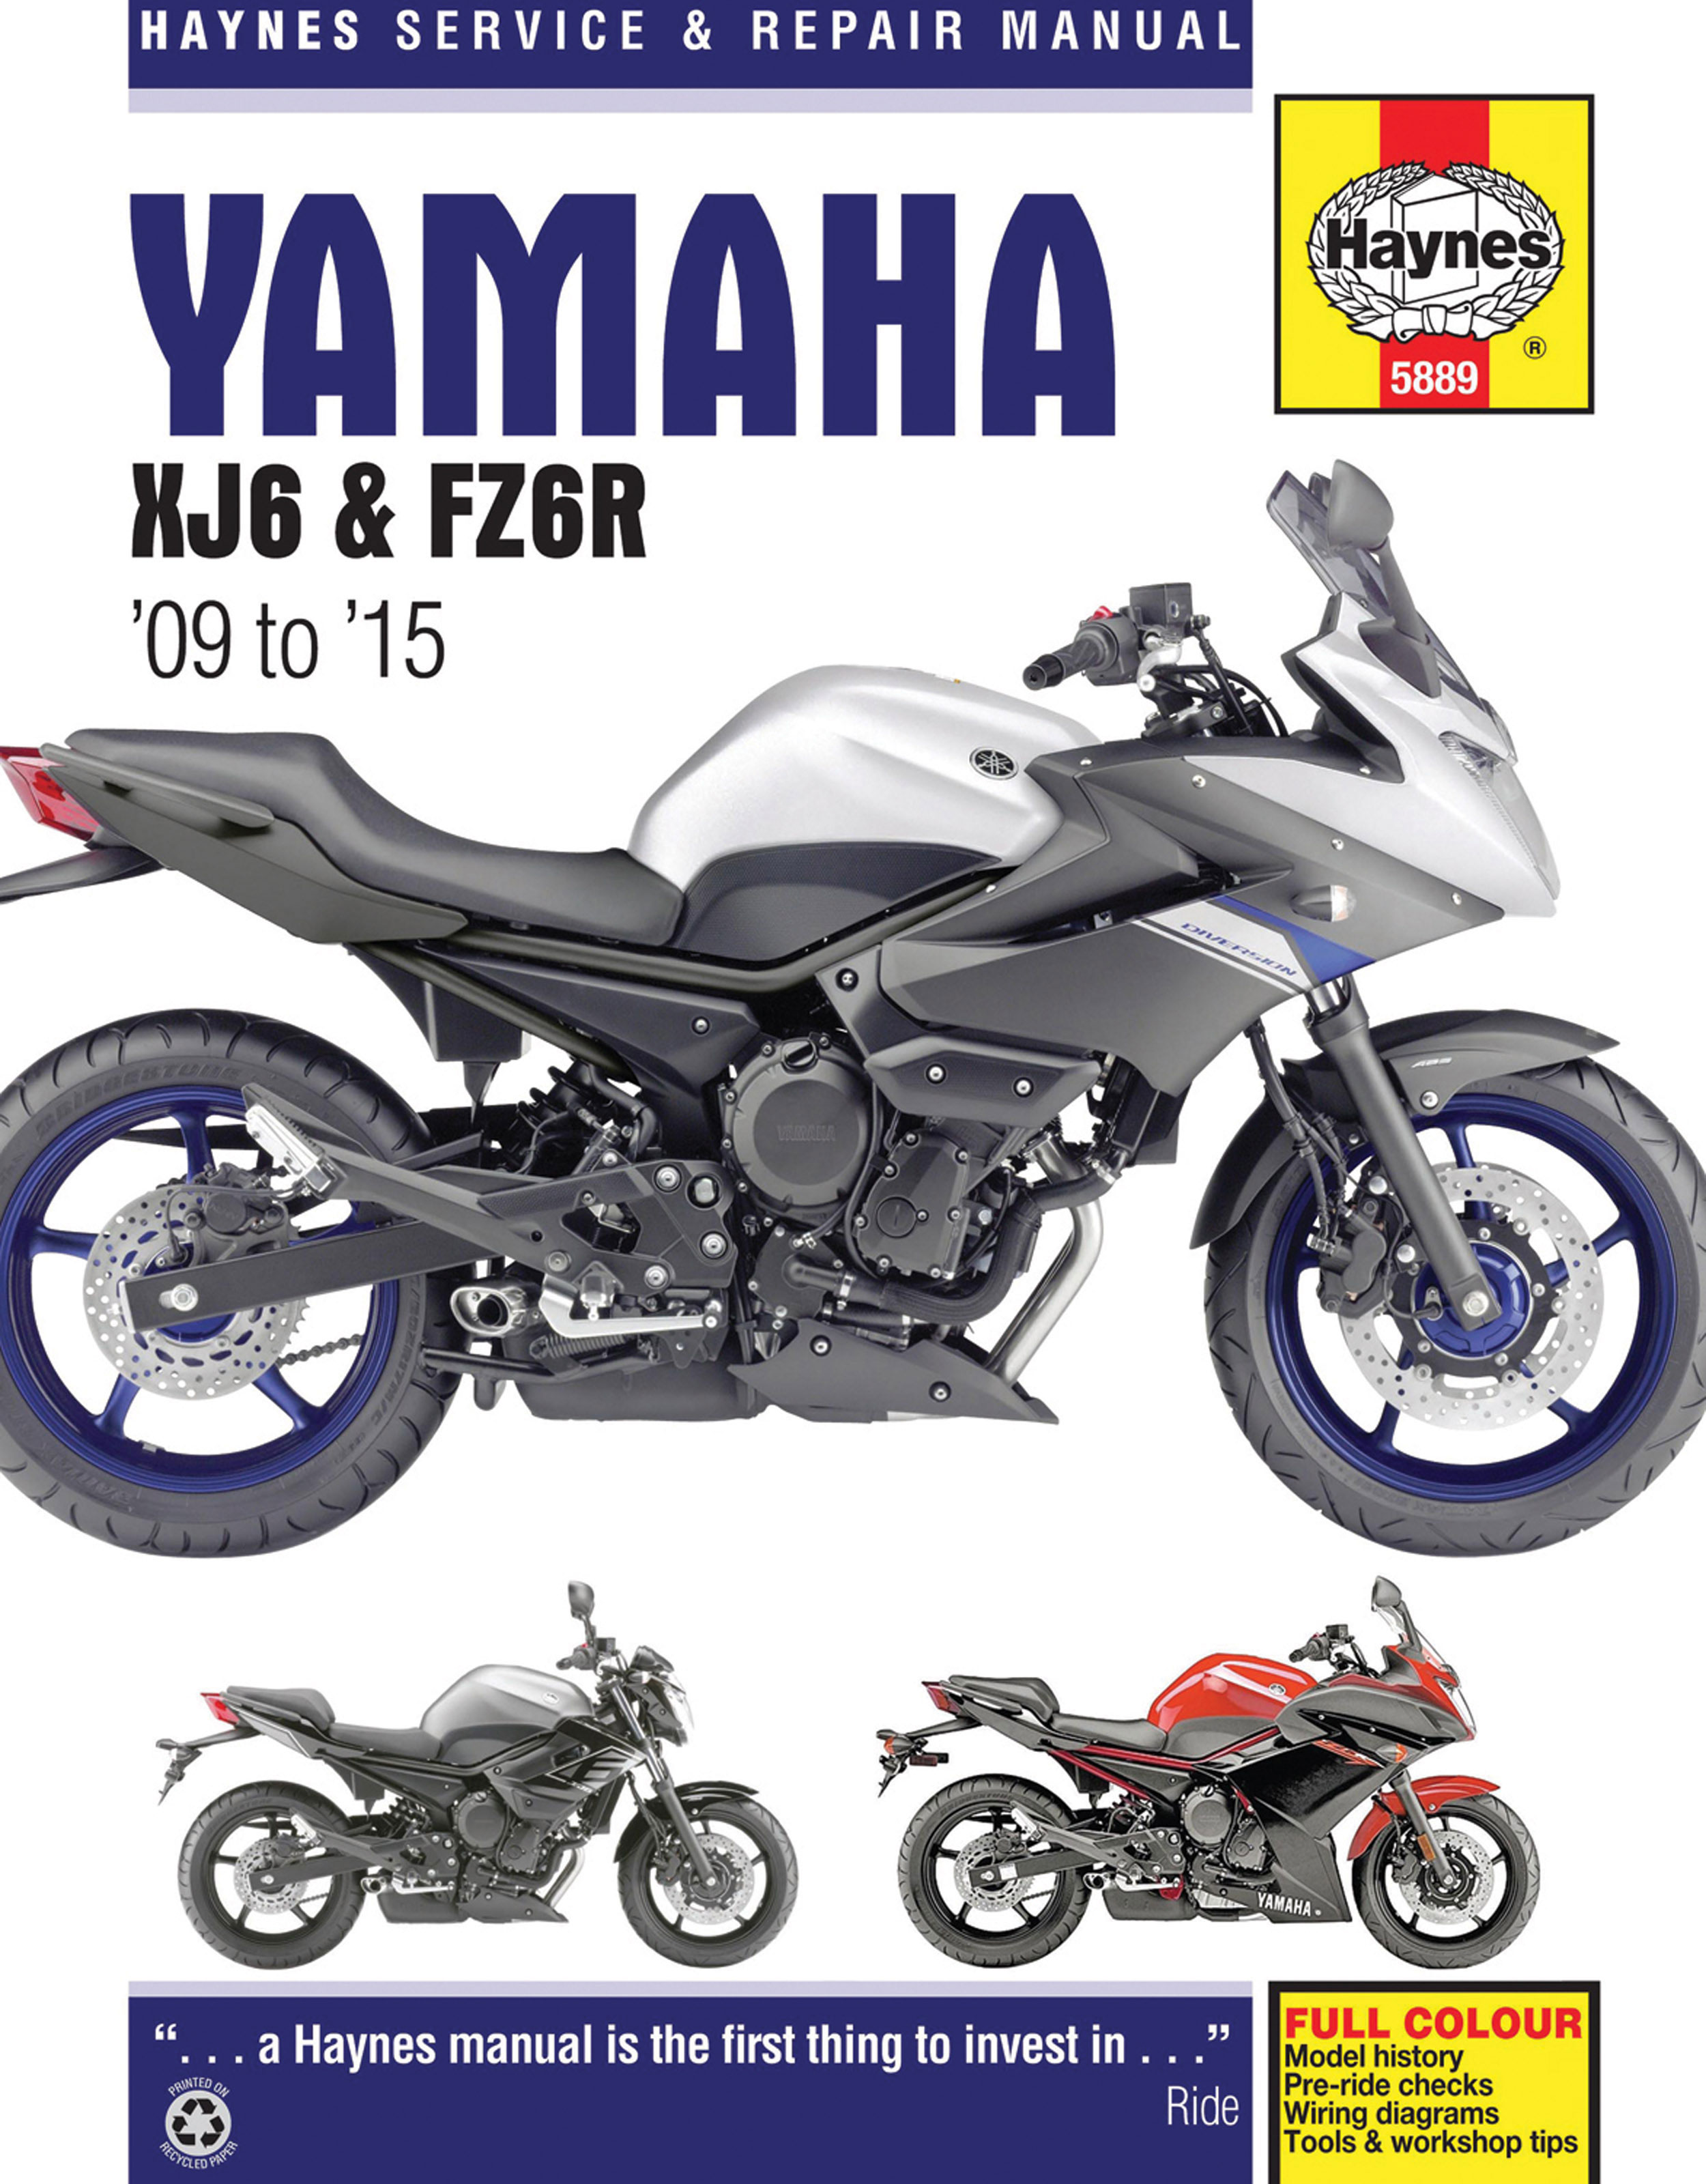 HAYNES Repair Manual - Yamaha XJ6 & FZ6R